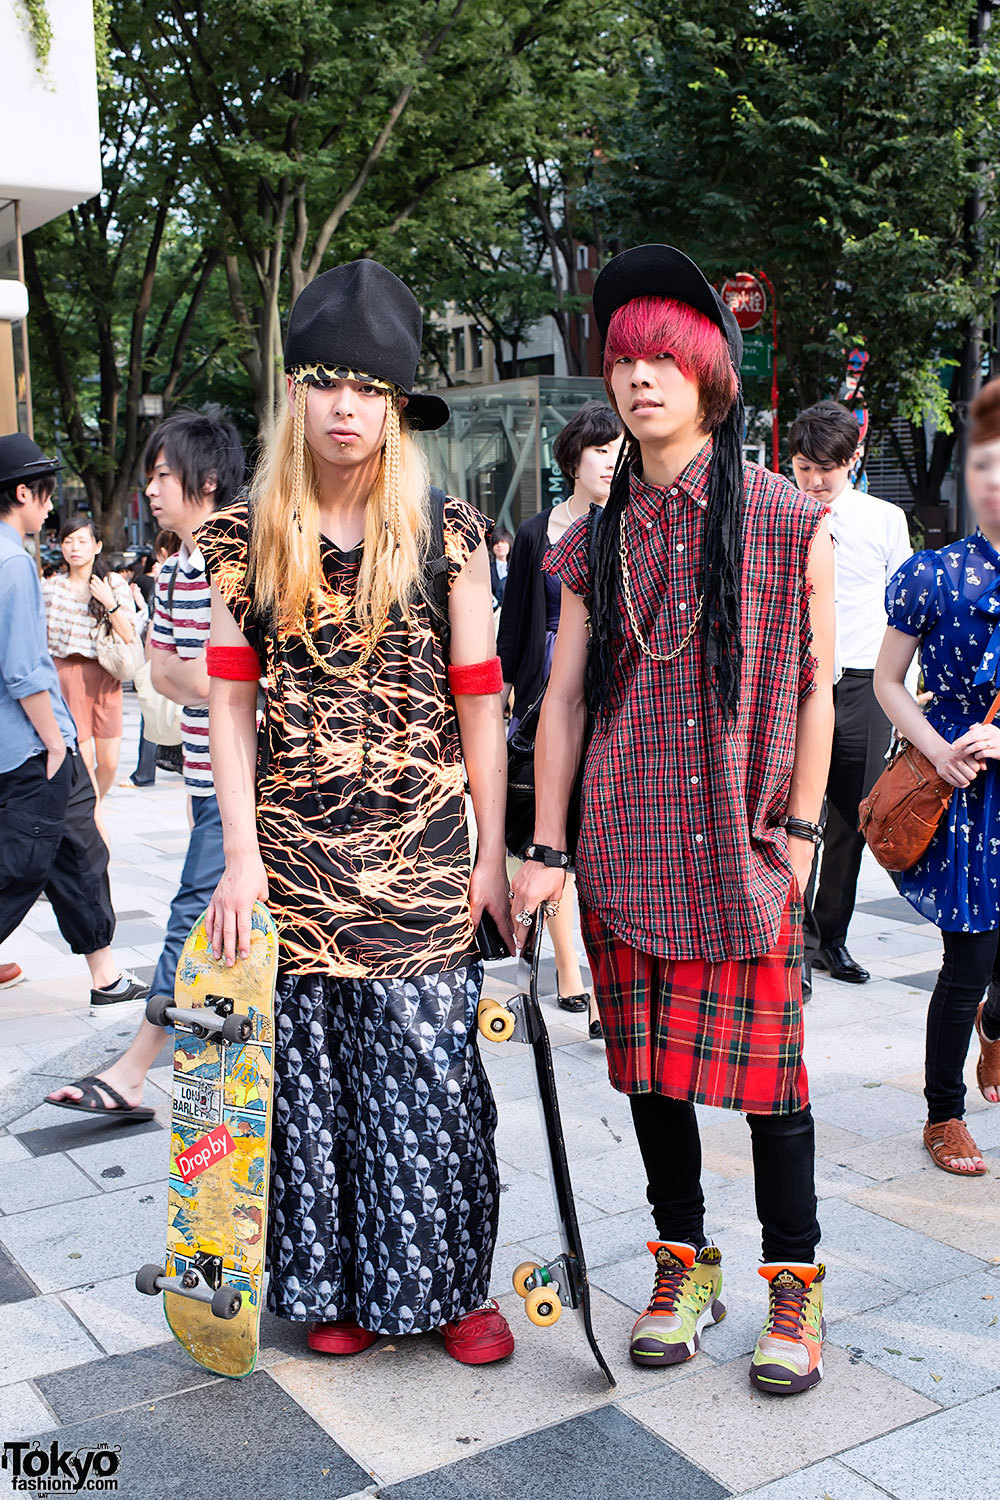 Harajuku skaters - one wearing SPX sneakers, the other in Jeremy Scott x Adidas.